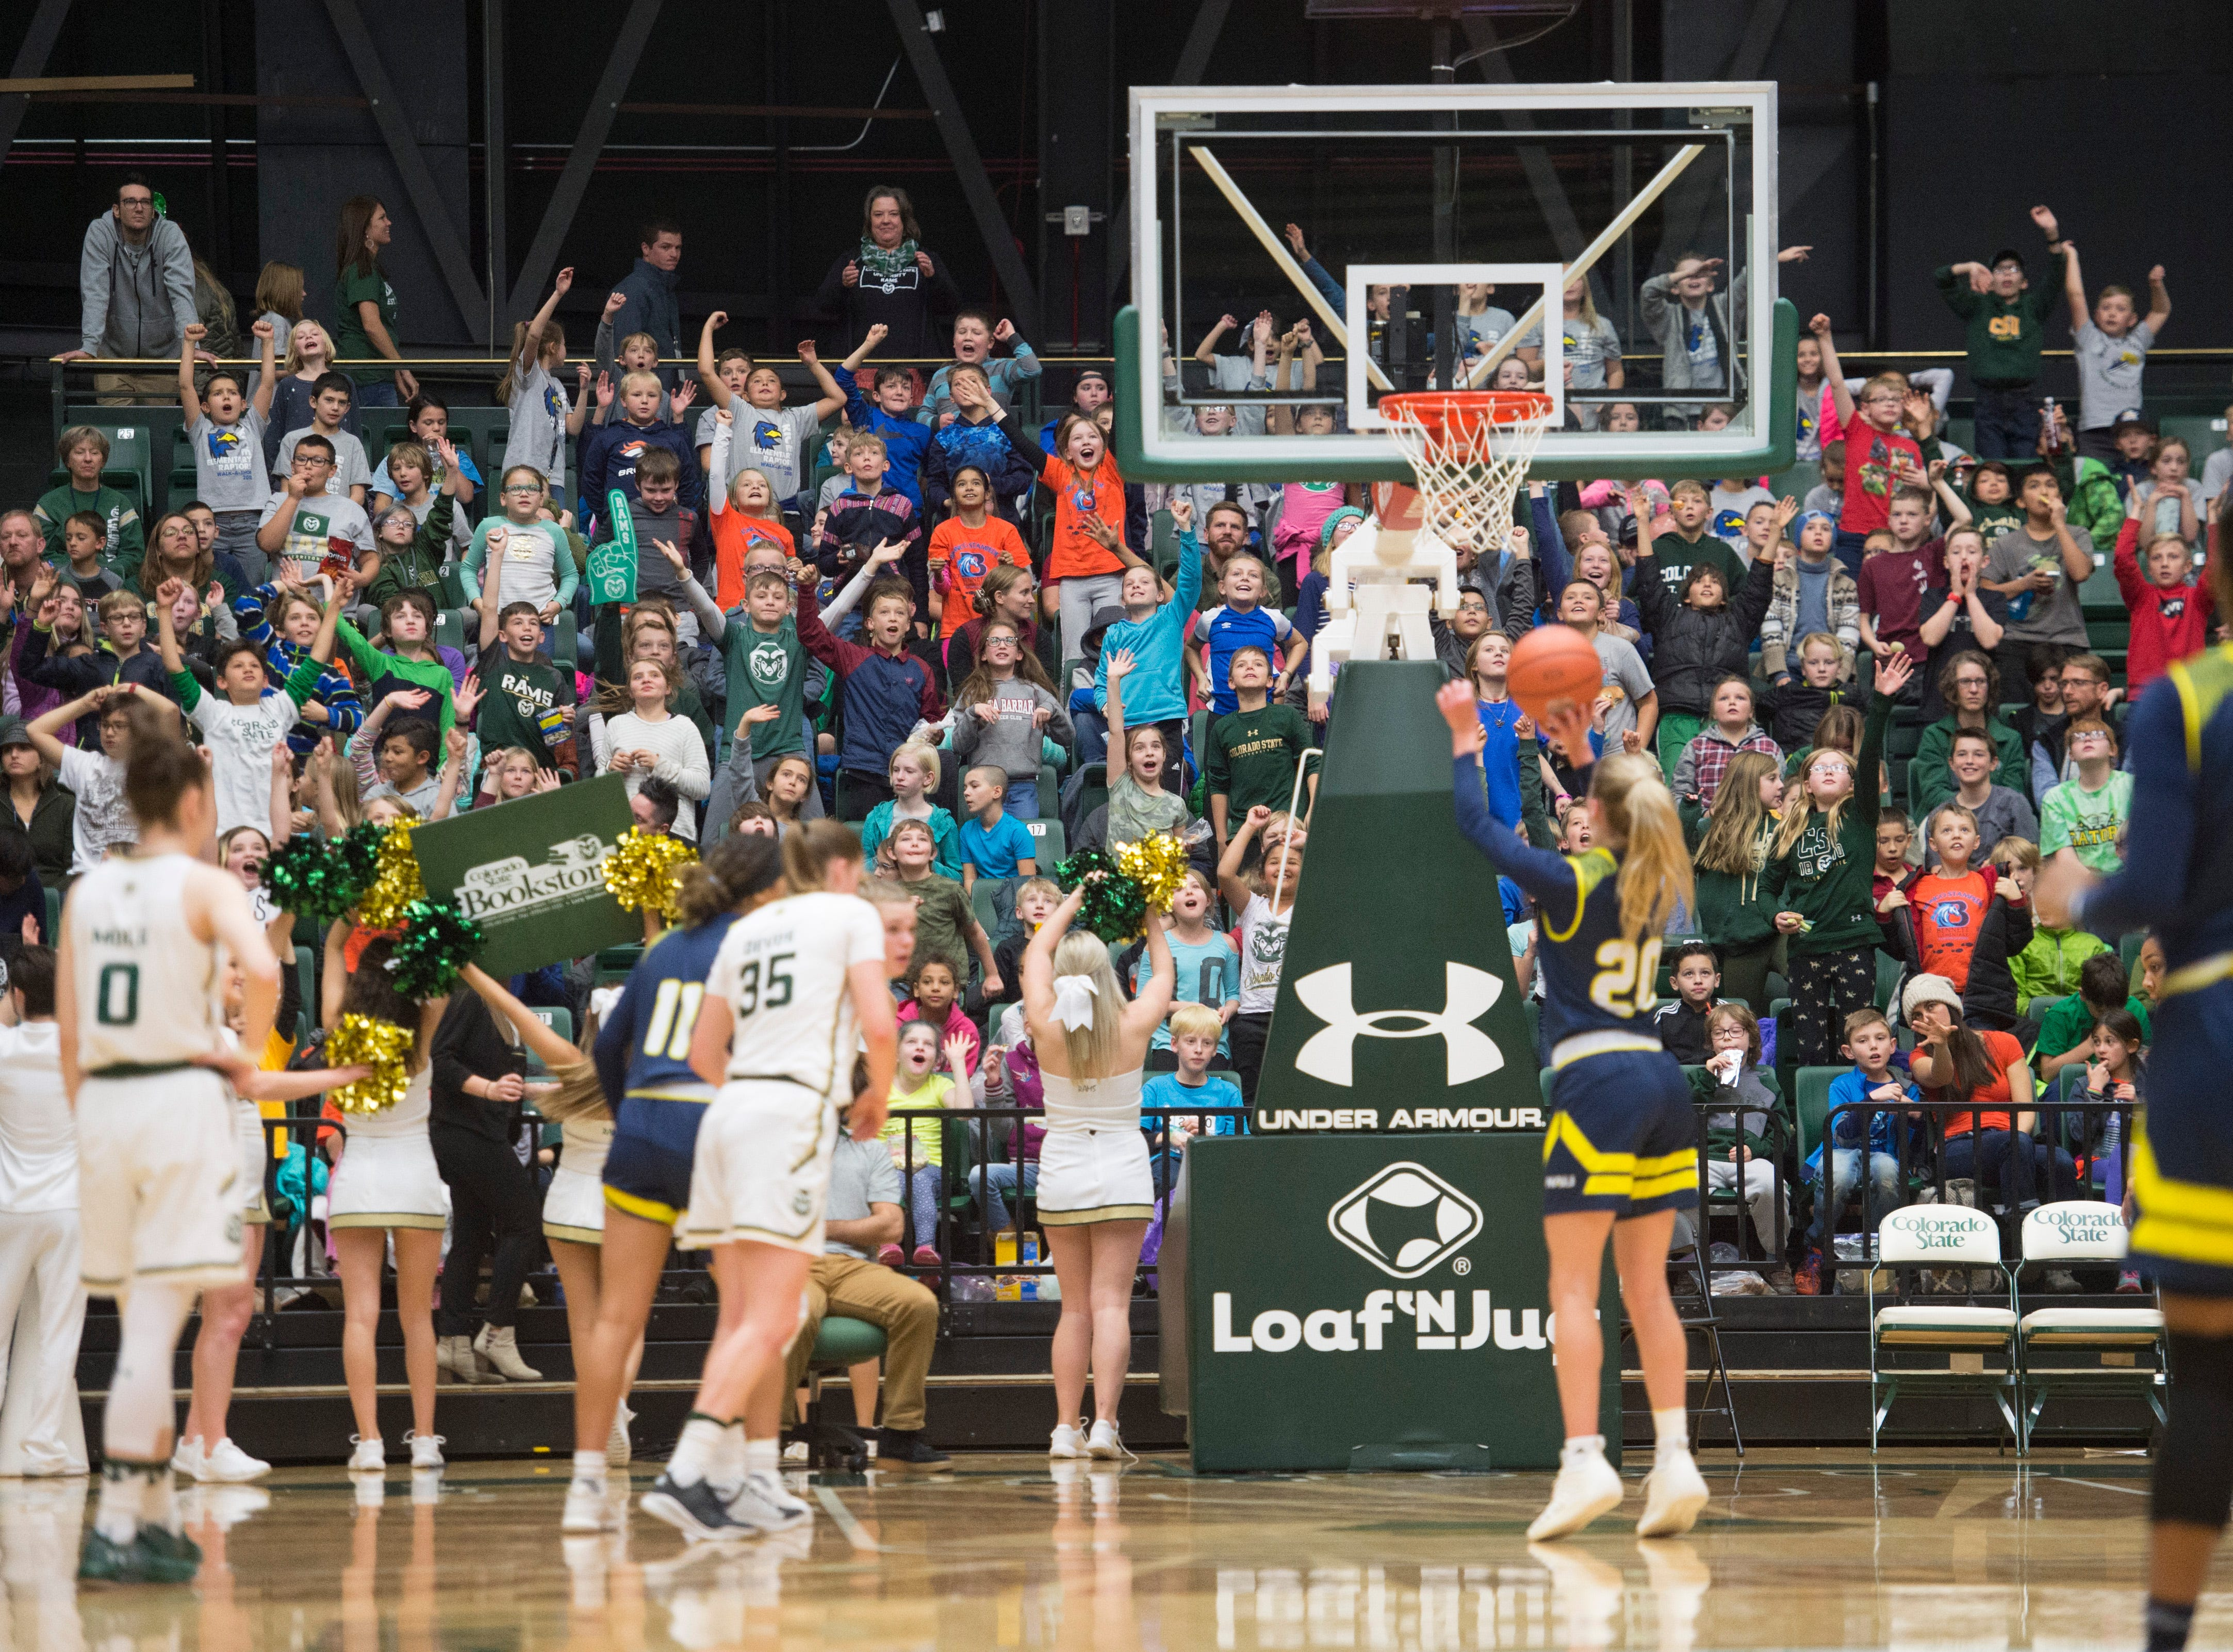 Elementary school students make some noise as Northern Arizona guard Lauren Orndoff shoots free-throws at the line during a game against CSU at Moby Arena on Wednesday, December 5, 2018. 1,600 area elementary school students took some time out of class to cheer on the CSU women's basketball team.